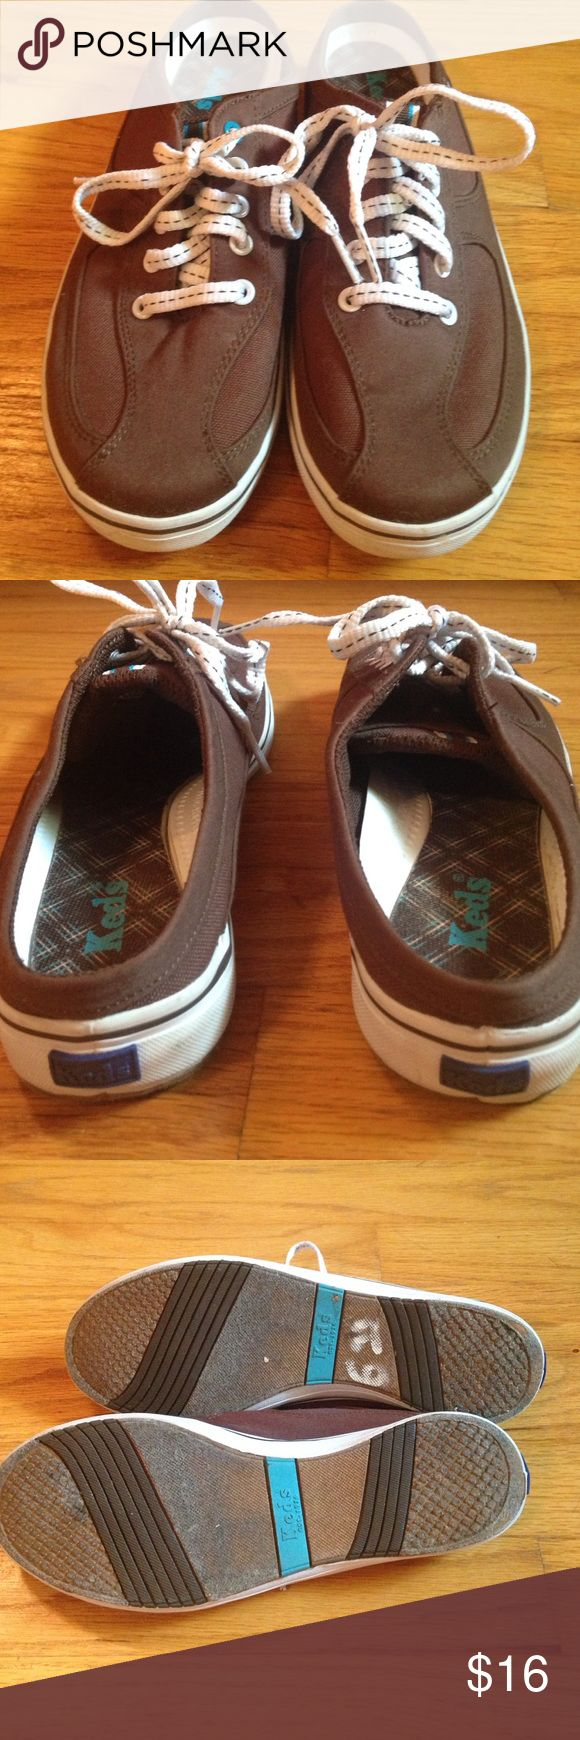 Keds sz 7 slip on brown sneakers Keds sz 7 slip on brown sneakers. Teal and white accents. Brown and white laces. Very comfortable cushiony inner sole. Worn a couple of times. Only wear is shown on bottoms (see pic). The rest are in perfect, almost- new shape! Keds Shoes Sneakers